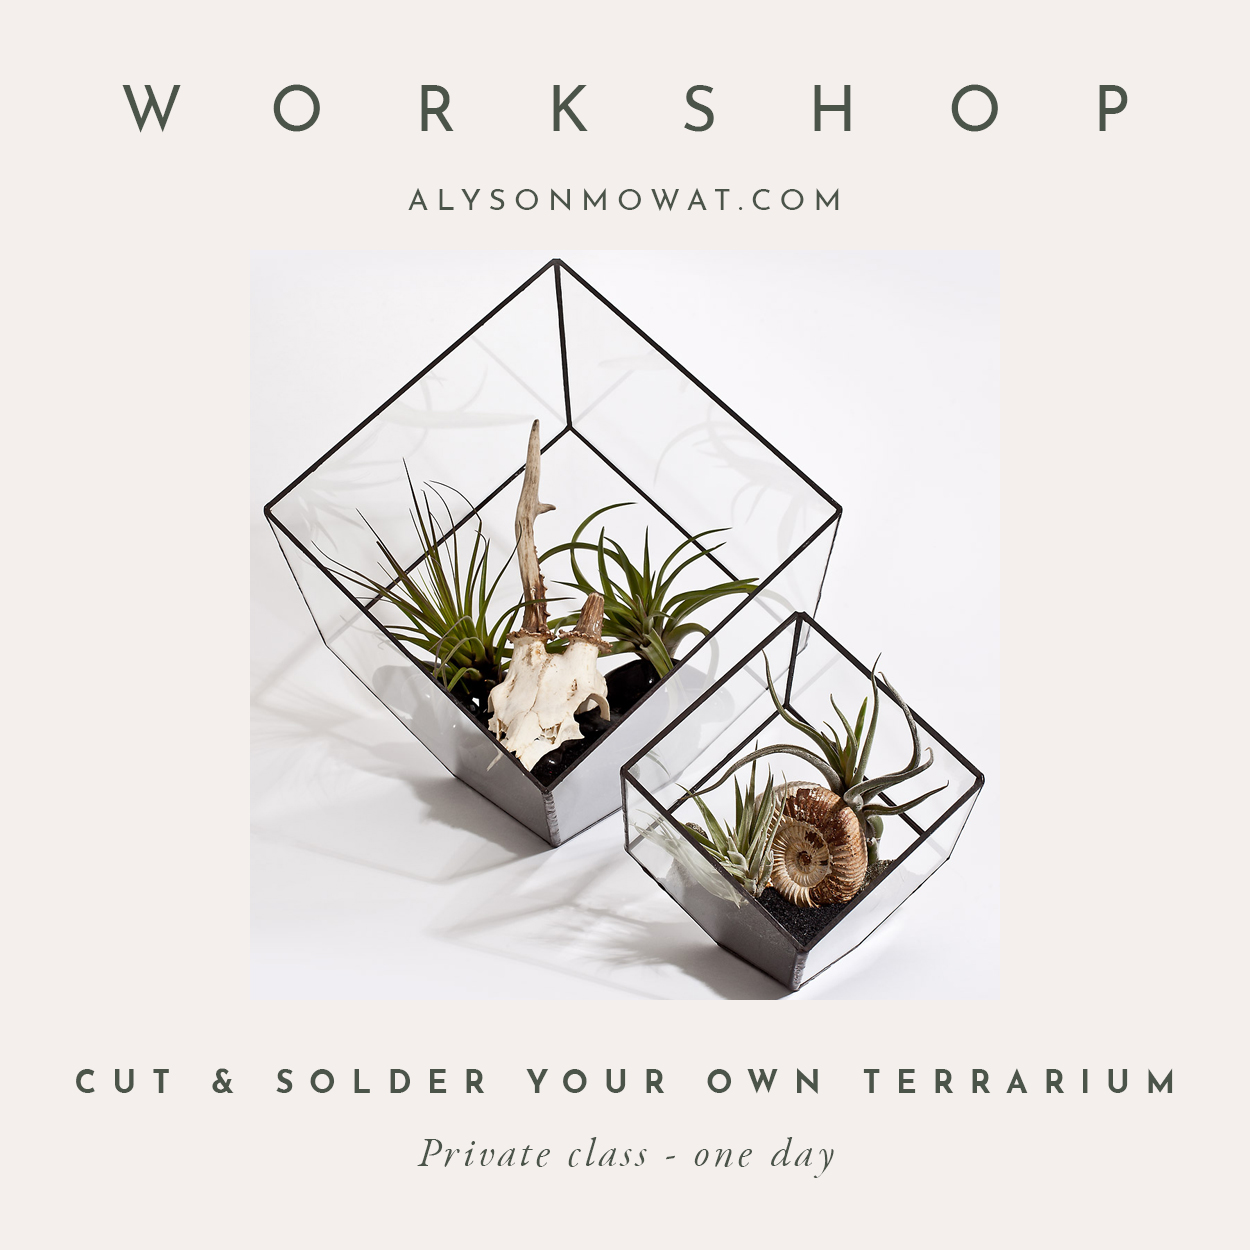 Cut & Solder Your Own Terrarium